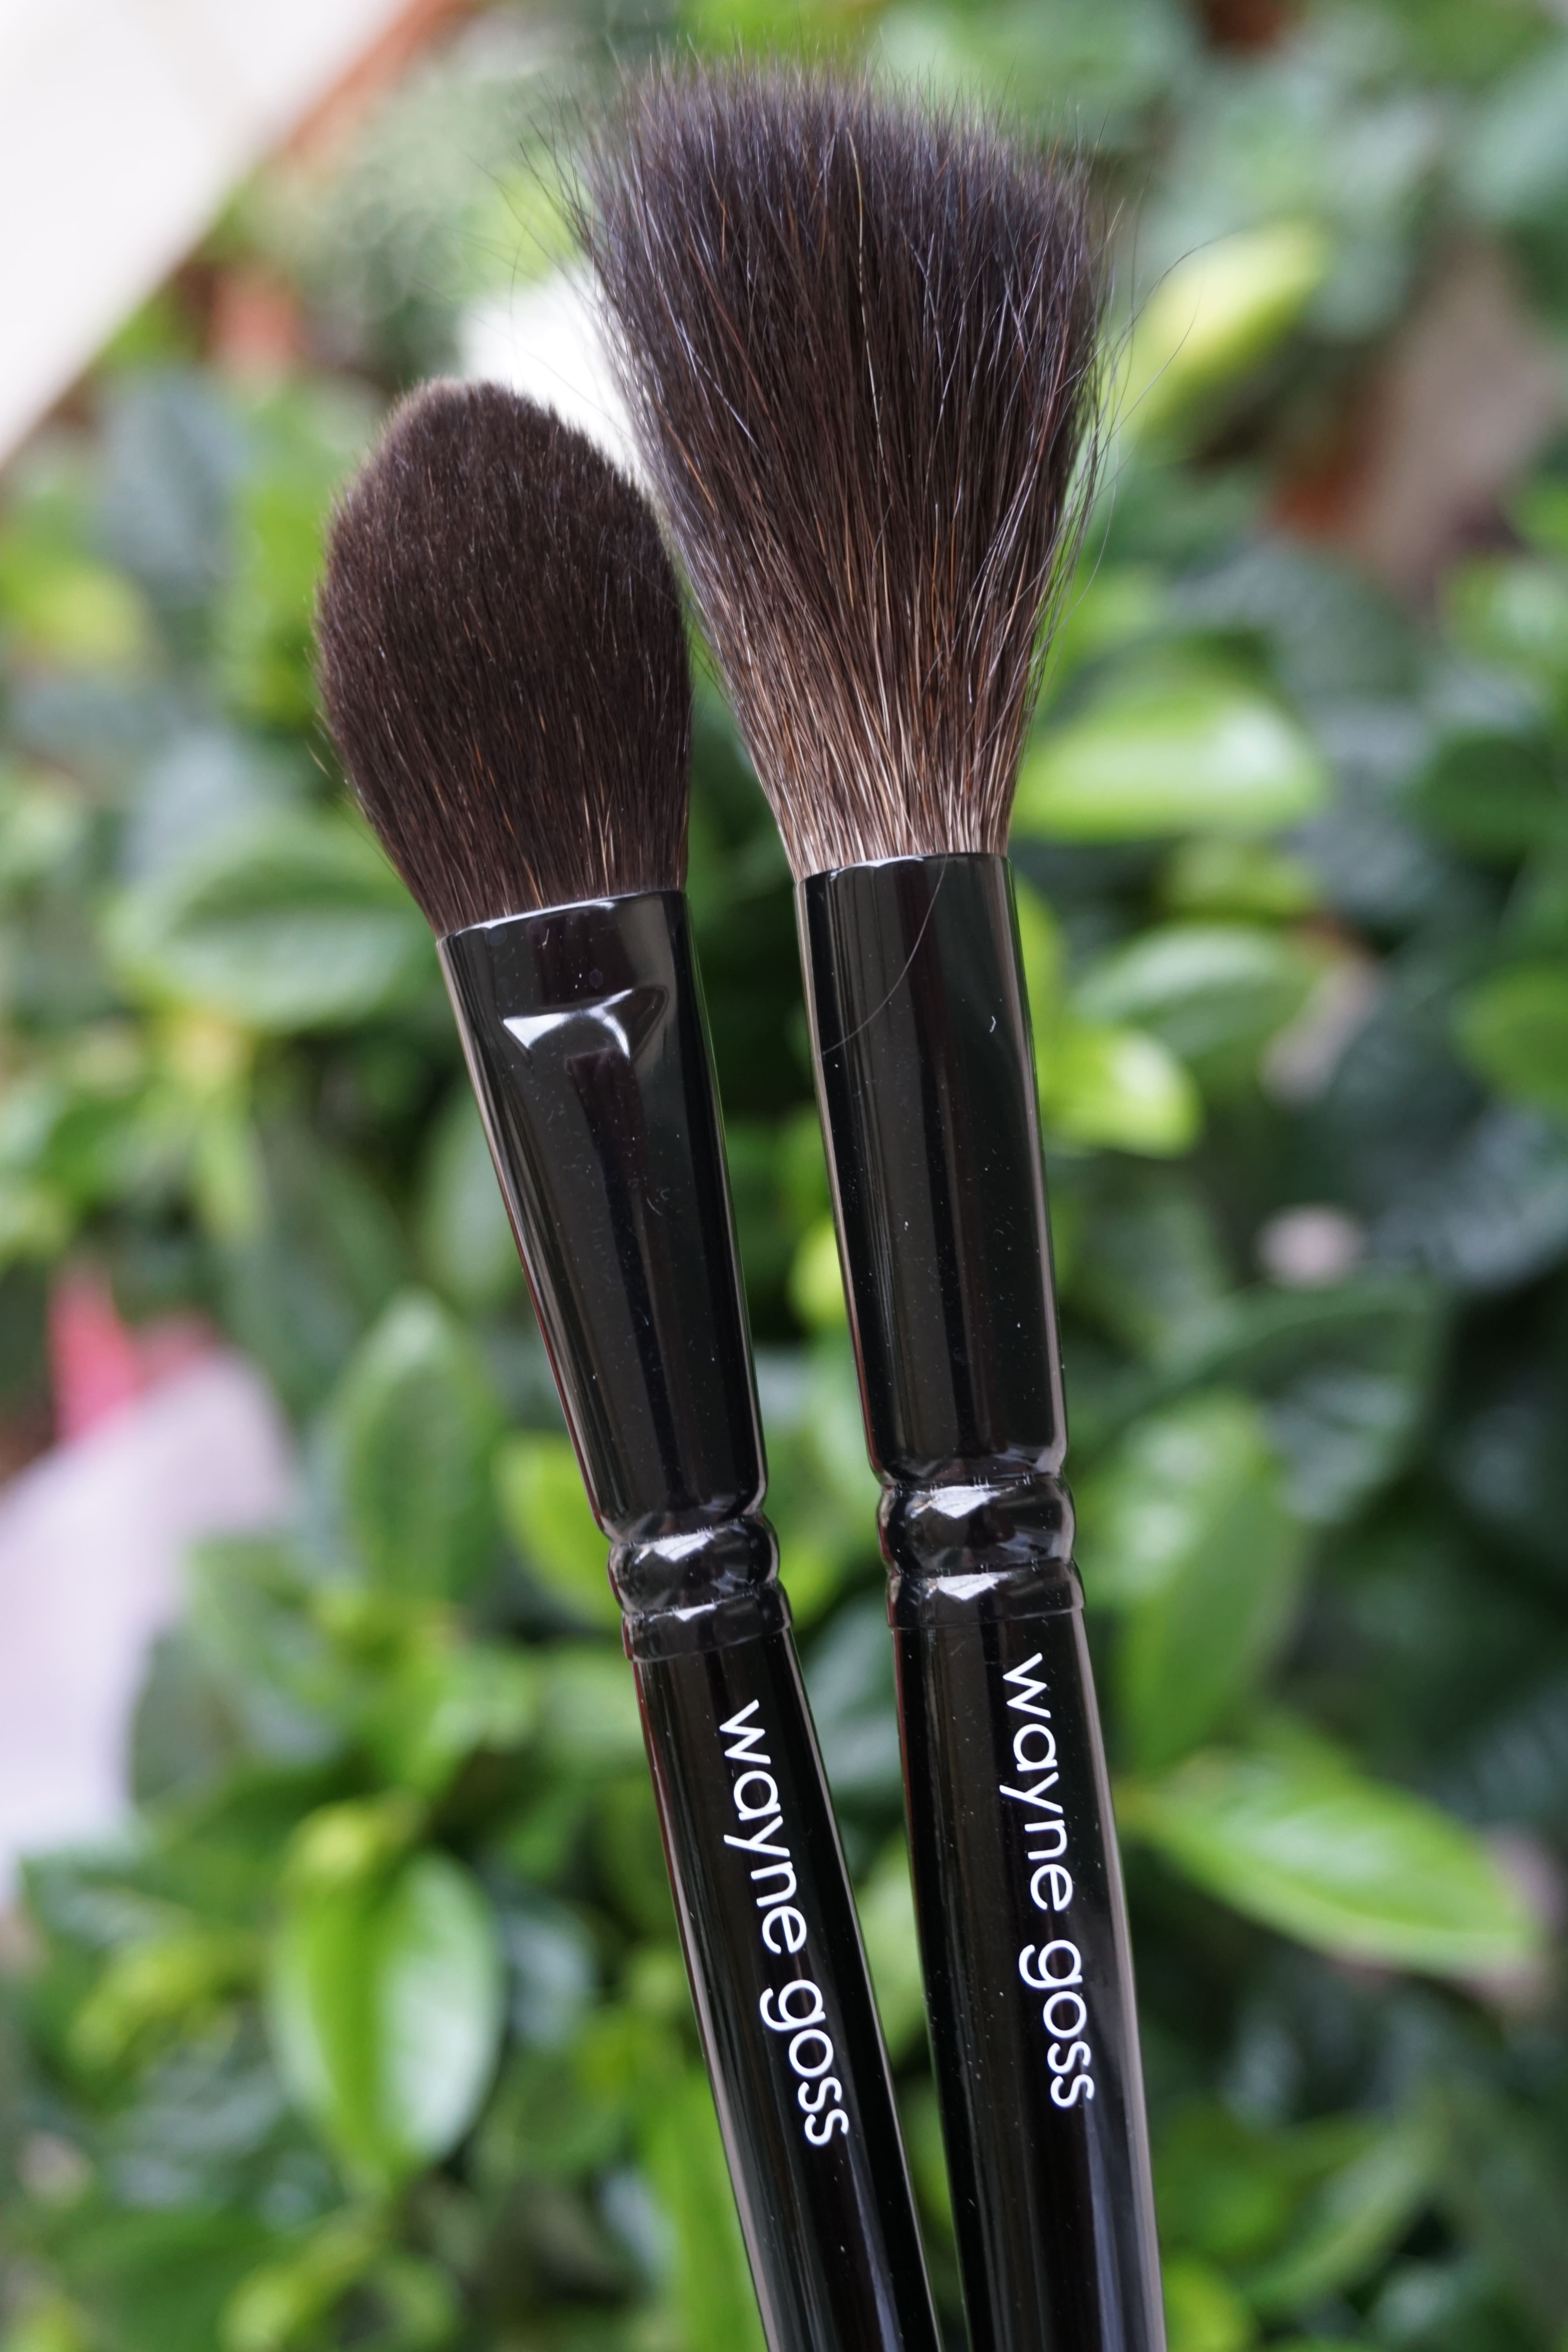 Wayne Gosse 2017 brush vs AirBrush